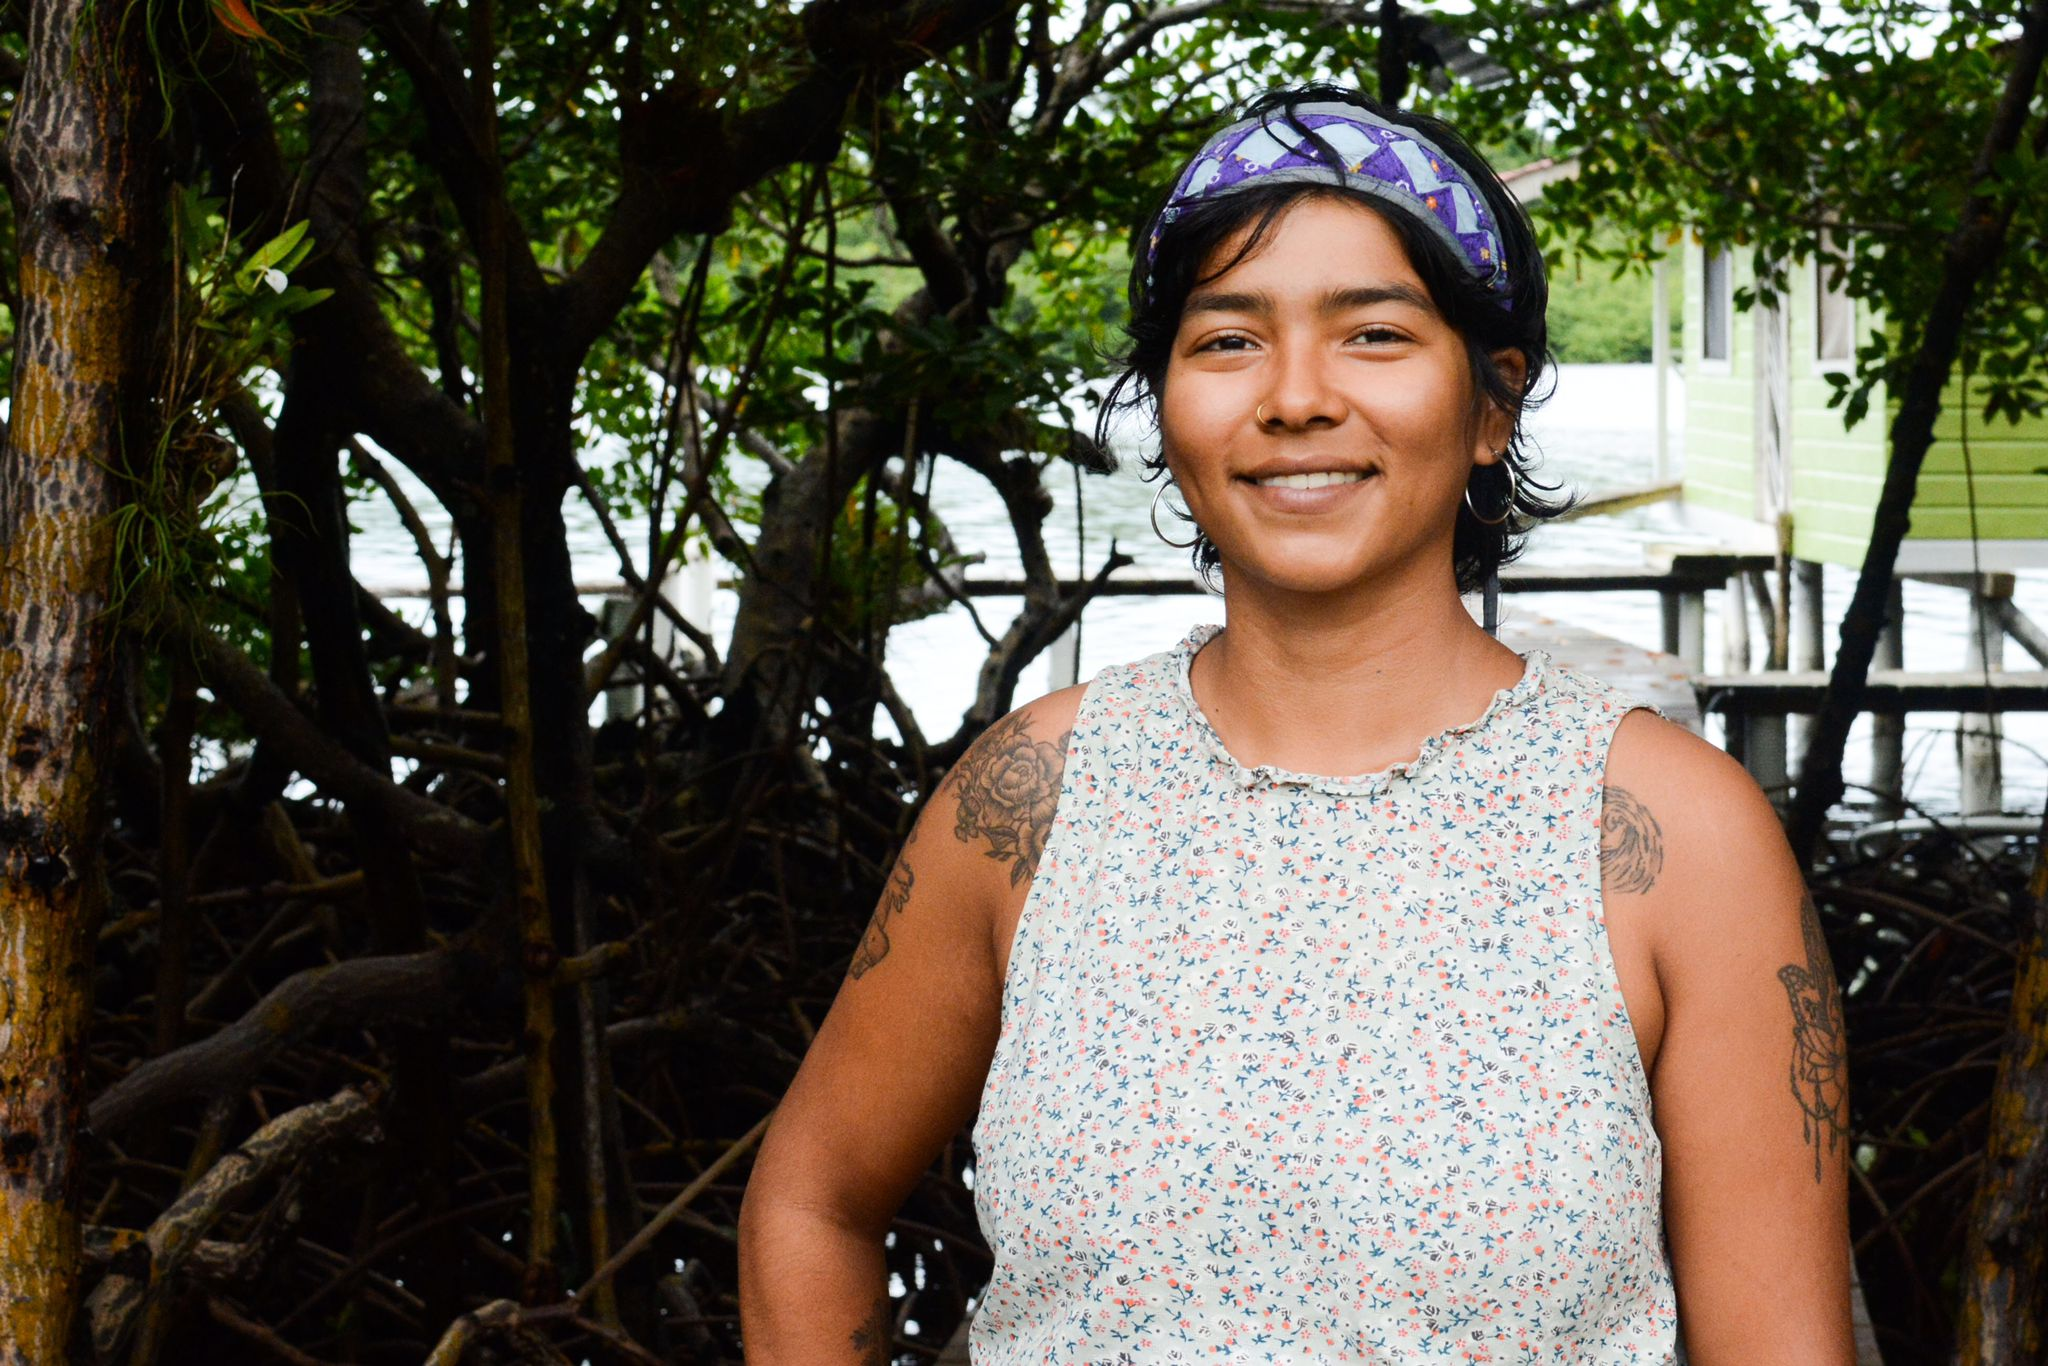 Kelly Hernandez, local liason for Days for Girls, helping to end period poverty in Panama